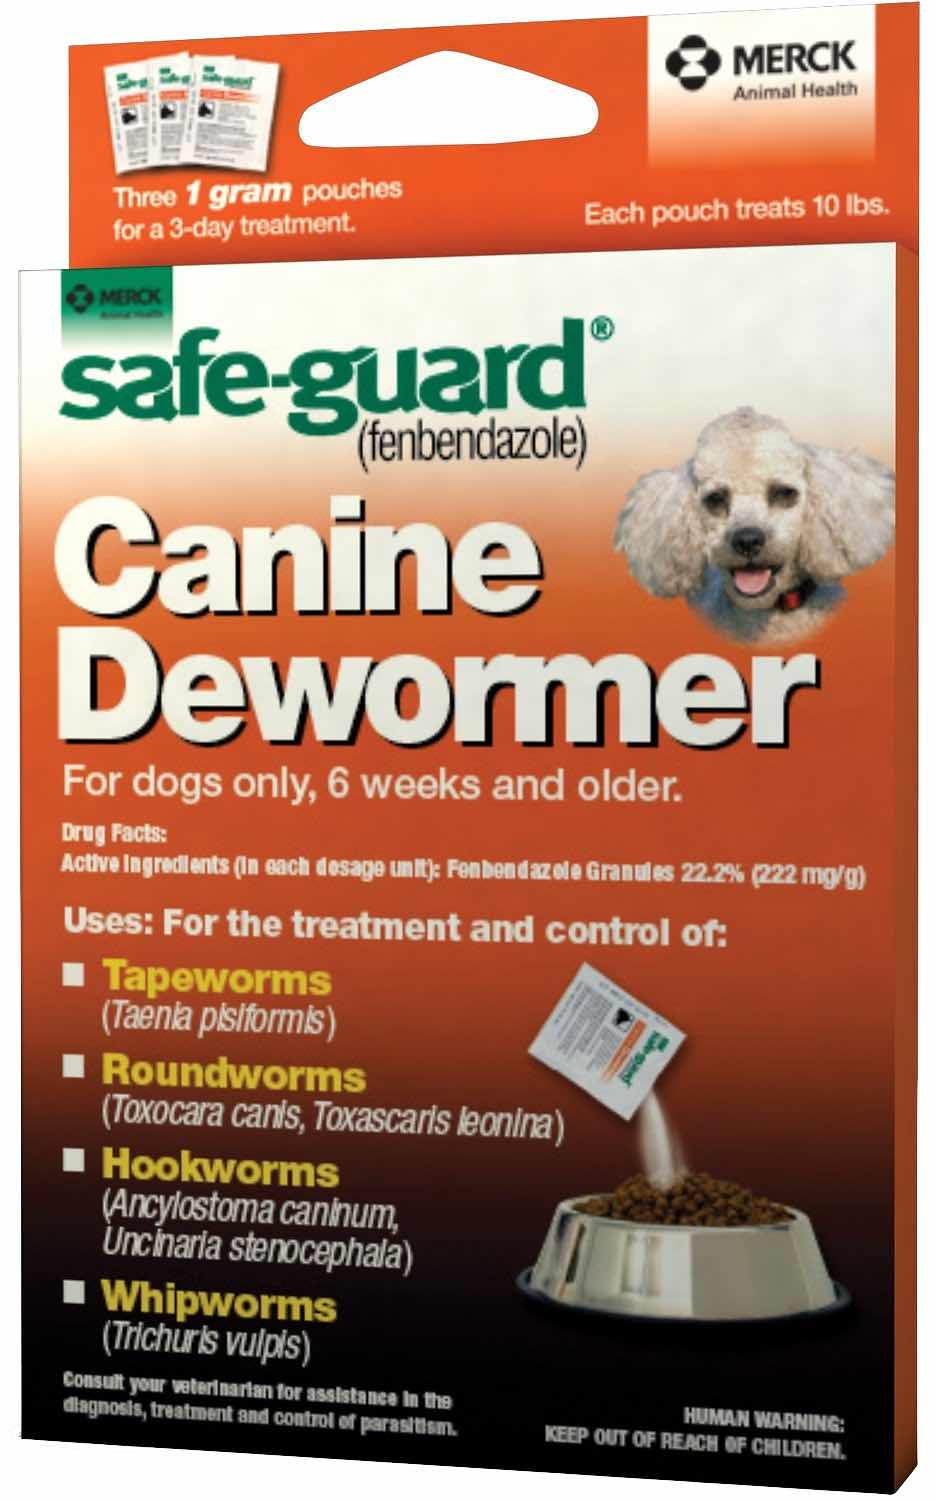 Safe-Guard Canine 1 g 3 pouches 1